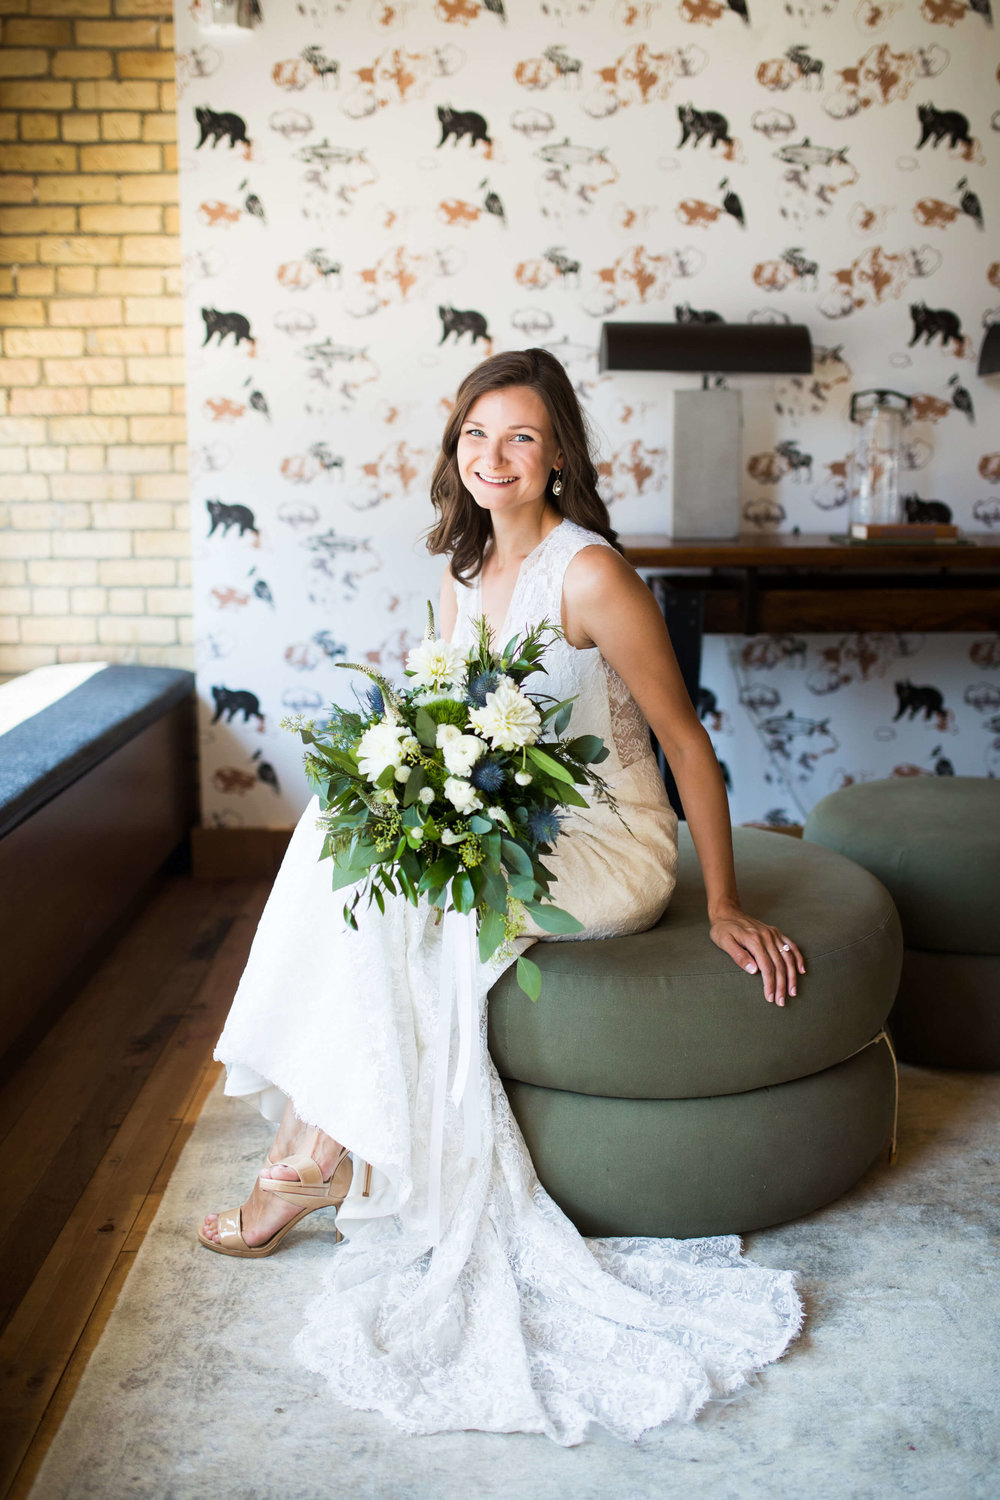 bride sitting on ottoman | Minnesota wedding photographer Studio KH wedding dress details | wedding blog | Sixpence Events 70 Ways to Photograph Your Wedding Dress.jpg